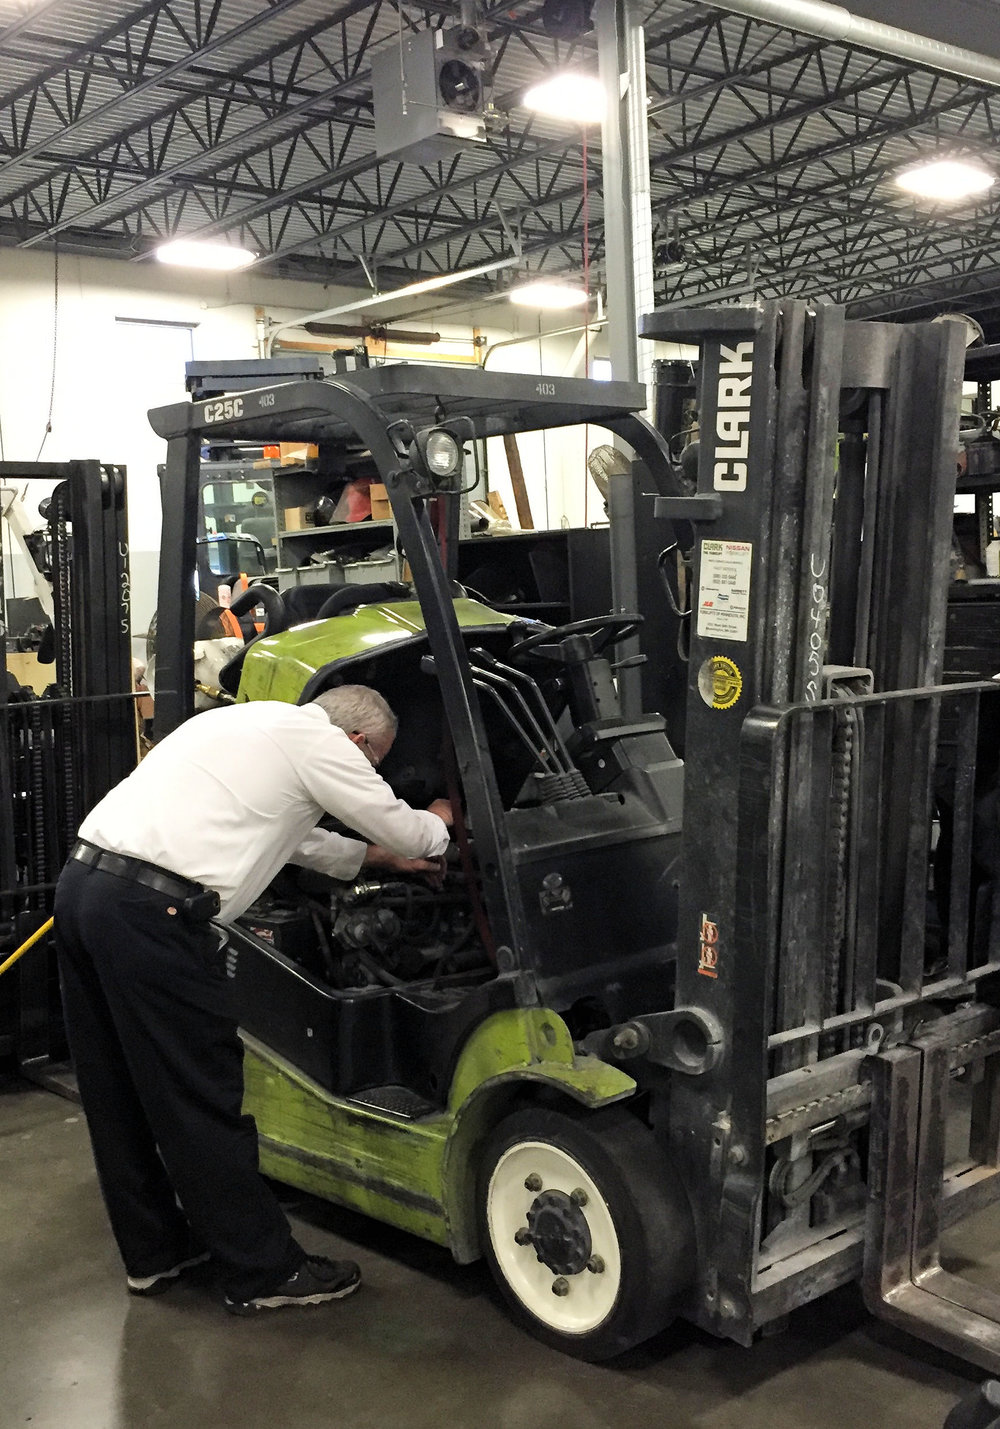 Forklift emission testing fall service special forklifts of forklift emission testing fall service special forklifts of minnesota inc 1betcityfo Choice Image